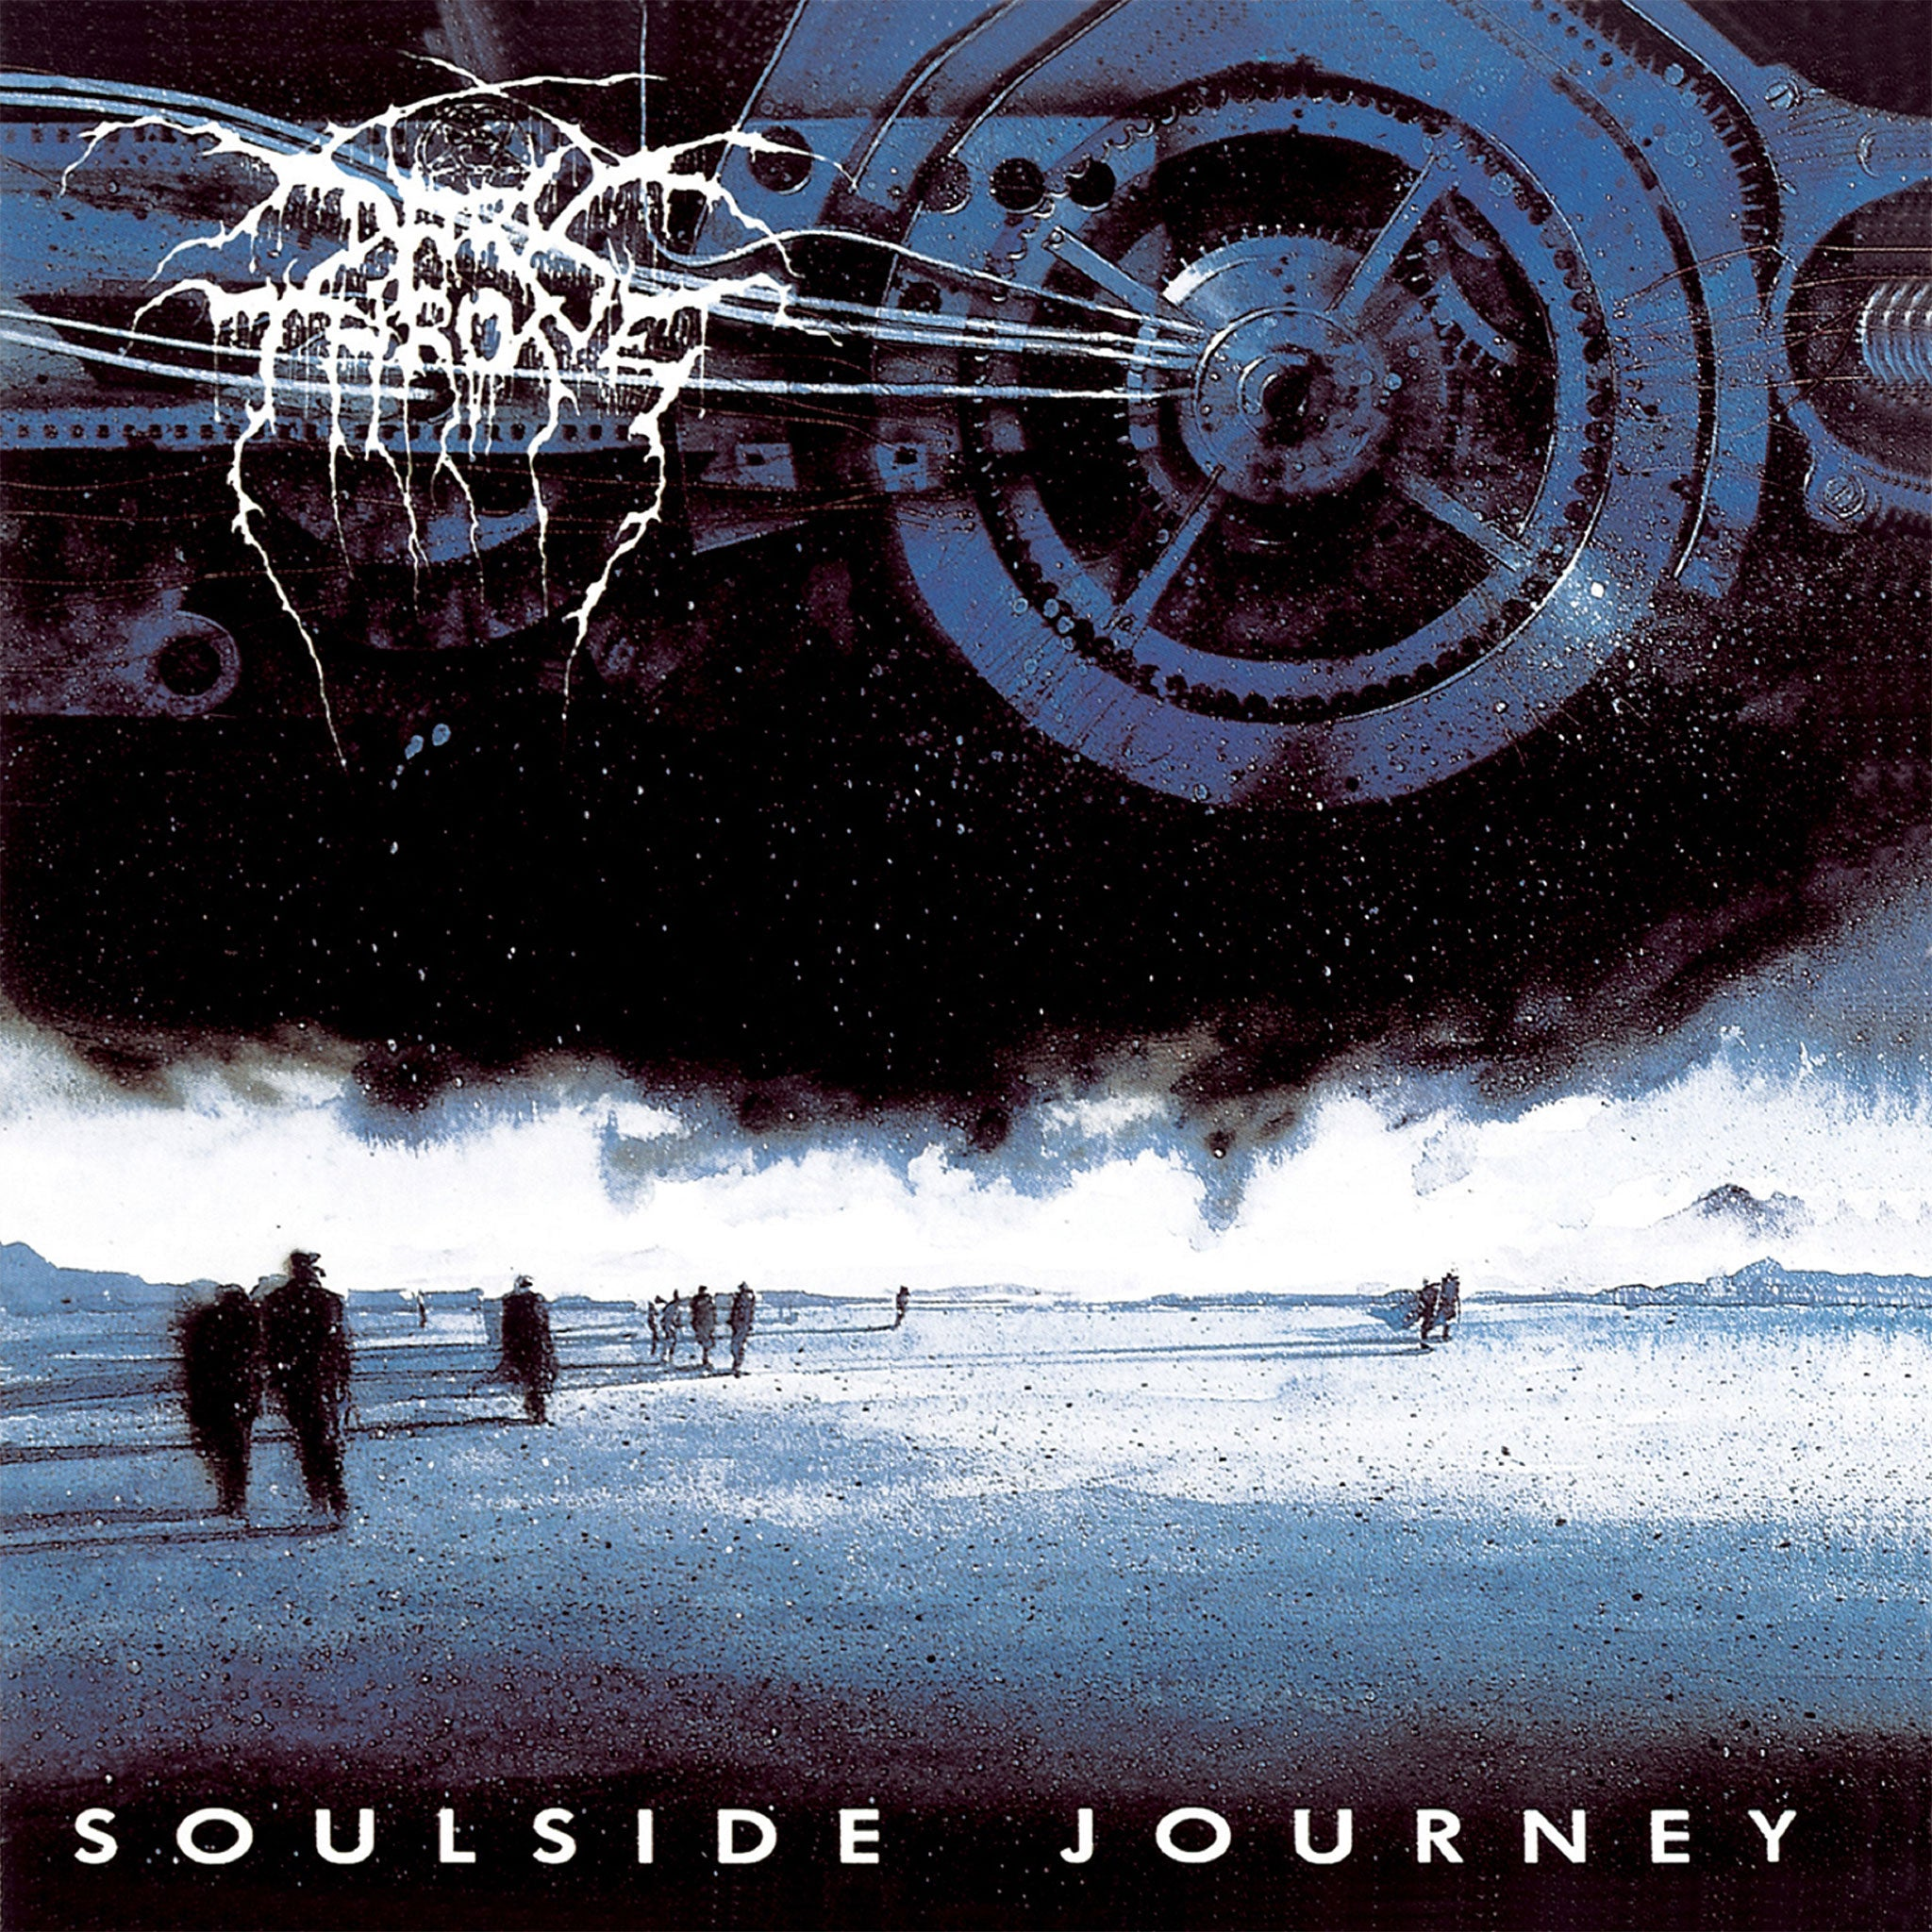 Darkthrone - Soulside Journey (2012 Reissue) (LP)